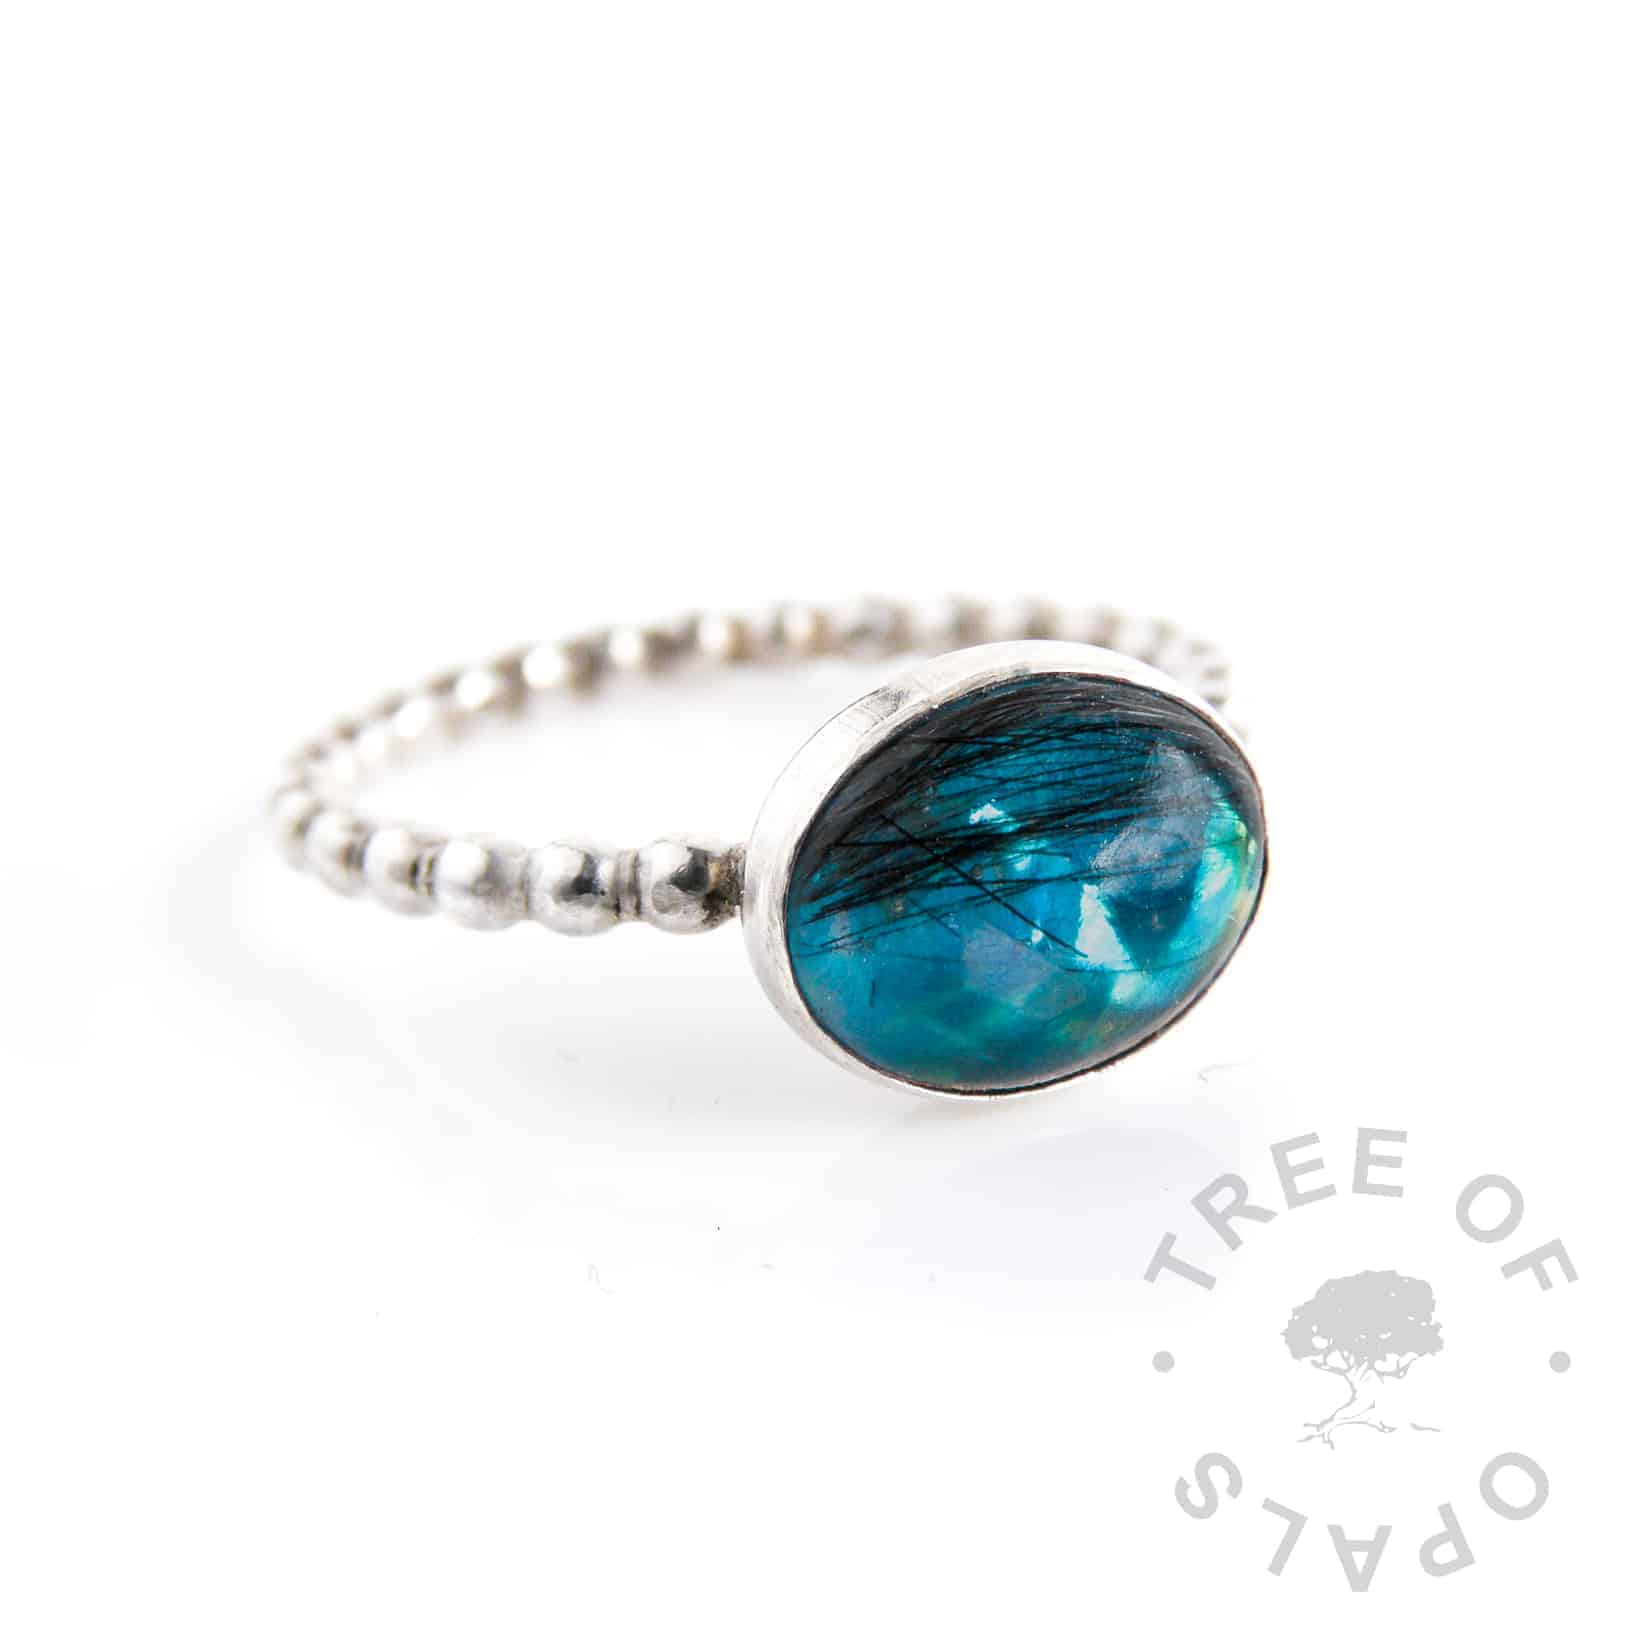 lock of hair ring with teal opalescent flakes background on a bubble wire solid silver band and 10x8mm oval cabochon